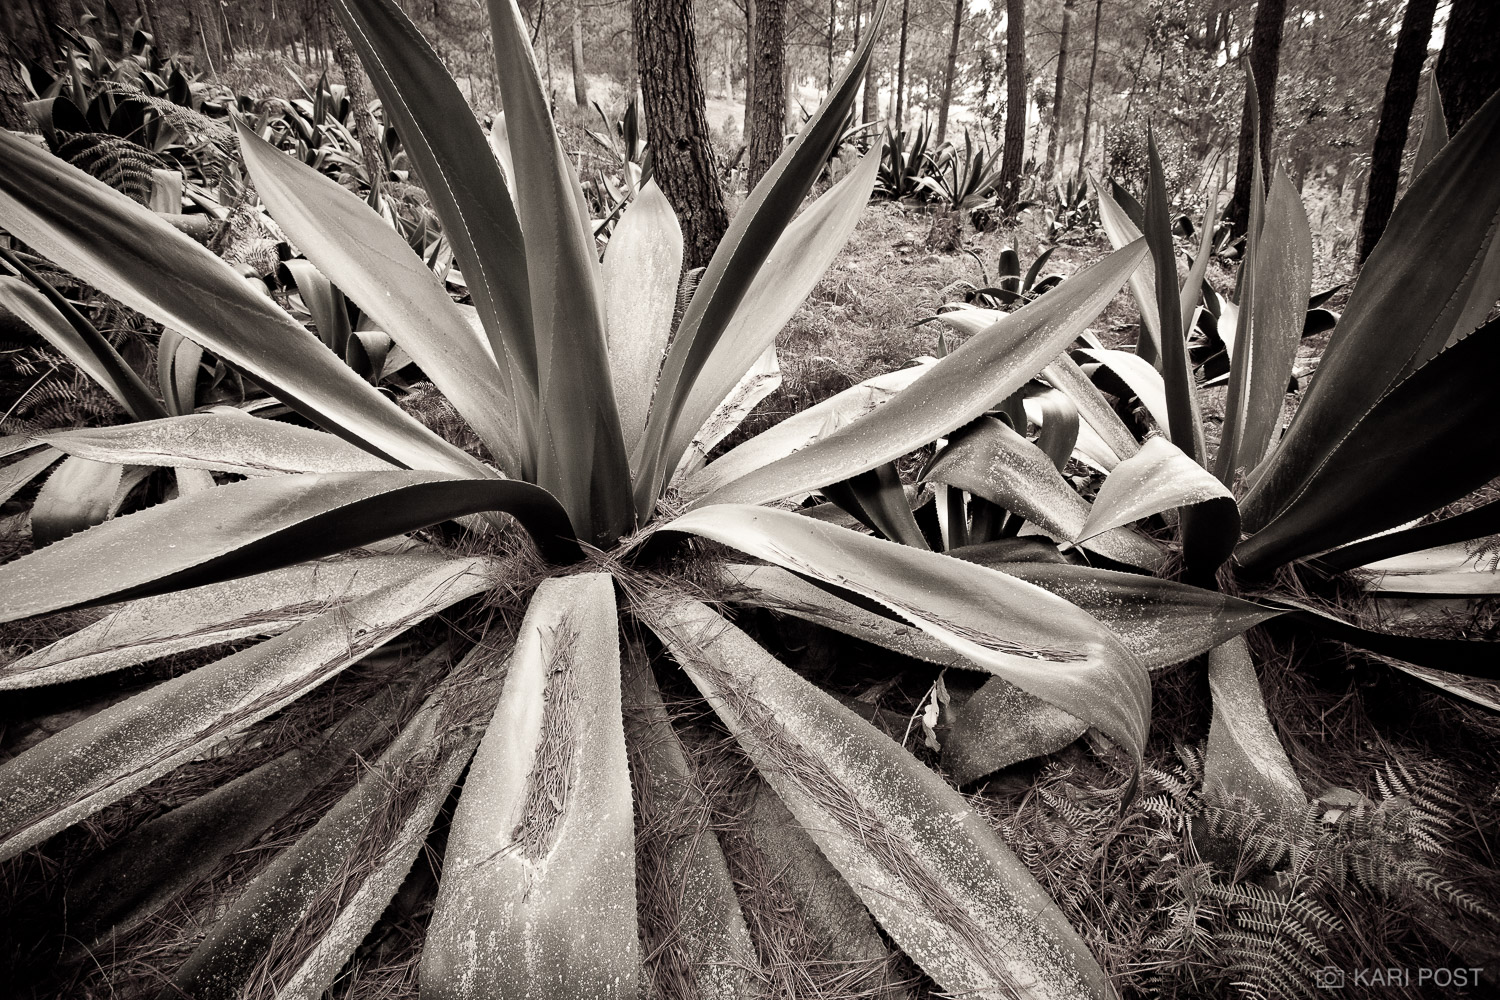 agave, Parc la Visite, La Visite National Park, Seguin, Seguin Foundation, Haiti, photo